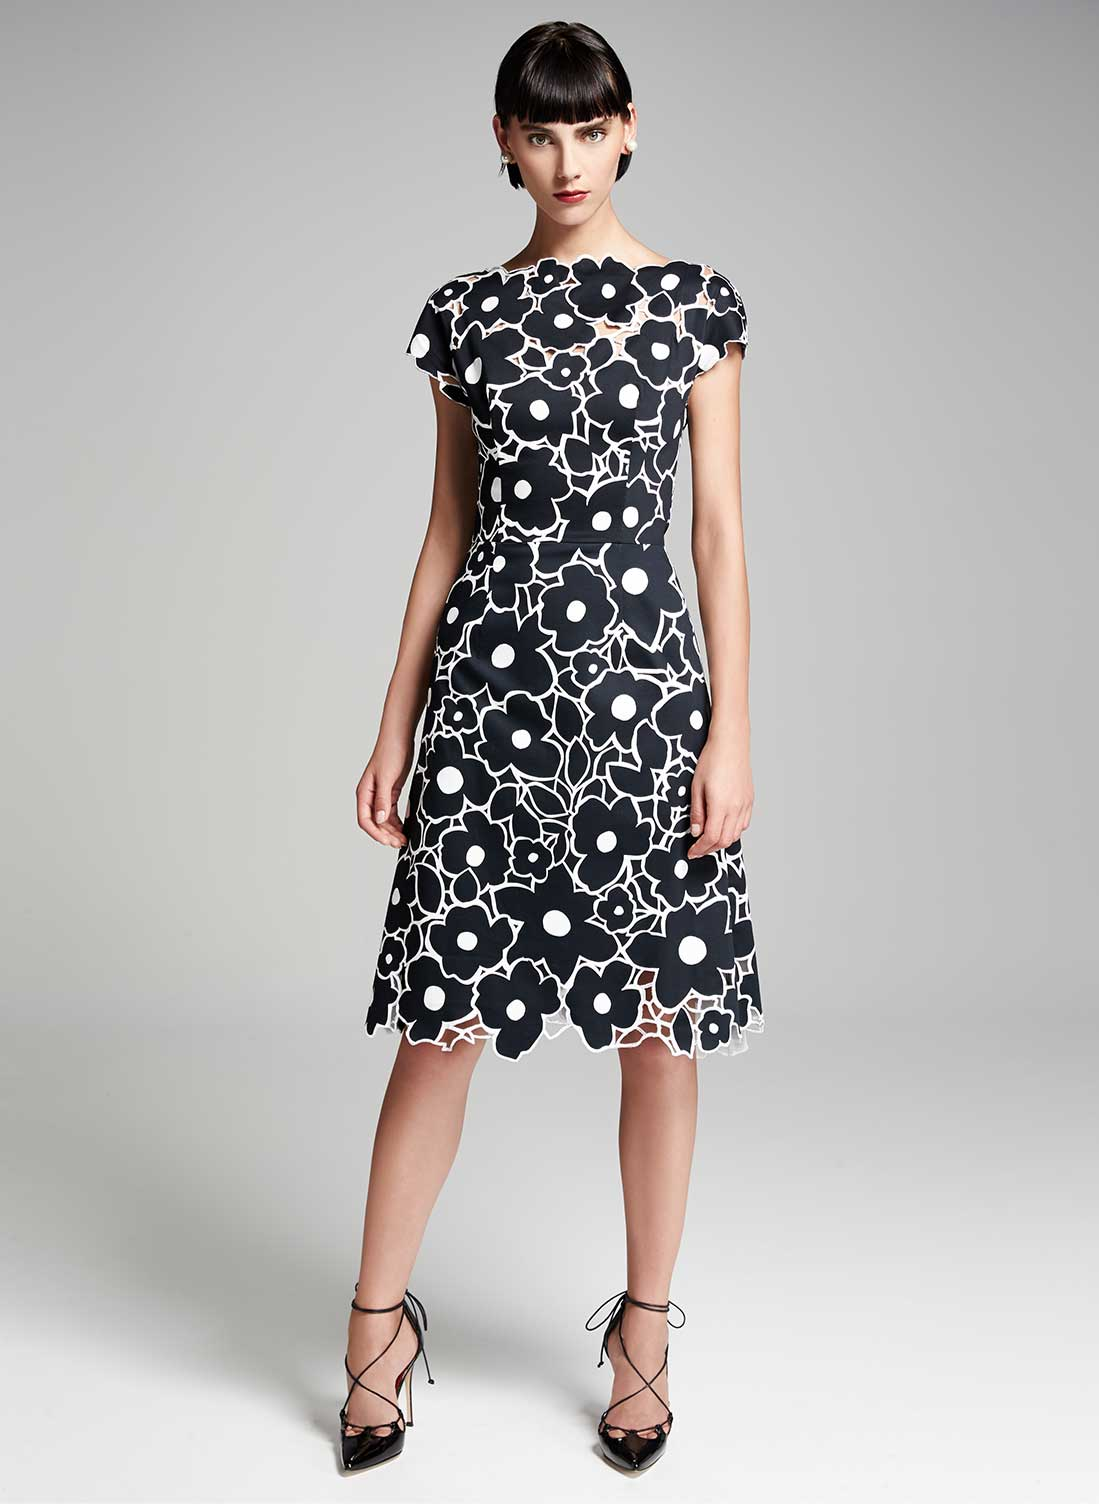 Carolina Herrera Resort Lb at Neiman Marcus